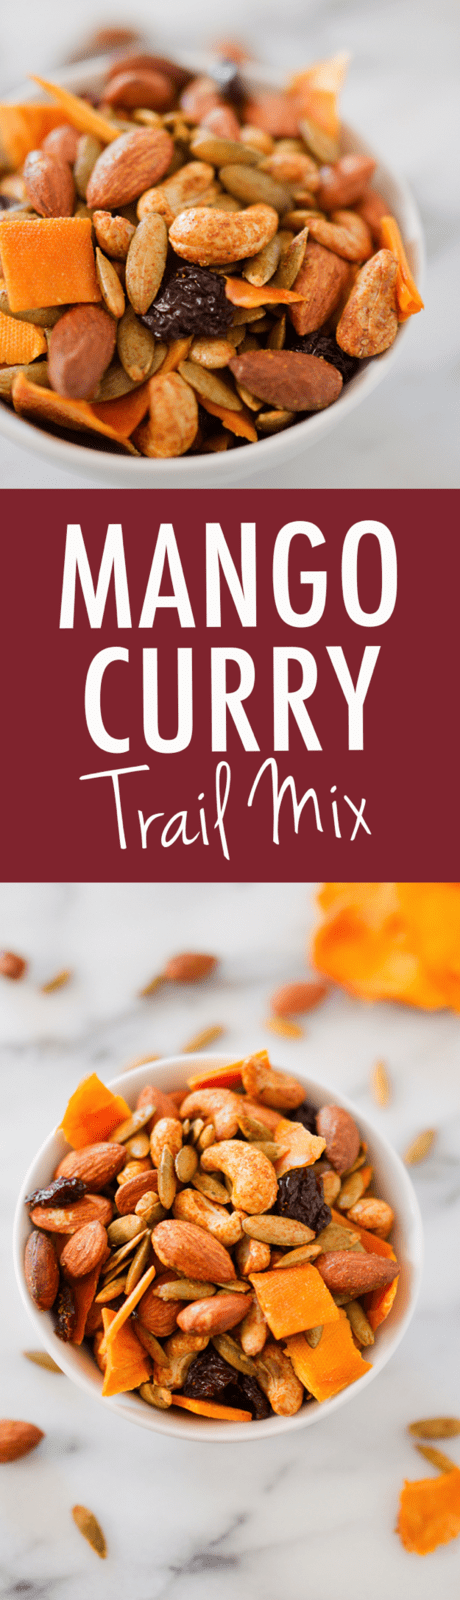 An addictive blend of roasted nuts, sweet mango, dried cherries and curry seasonings, this Mango Curry Trail Mix is perfect for parties or on-the-go snacking!